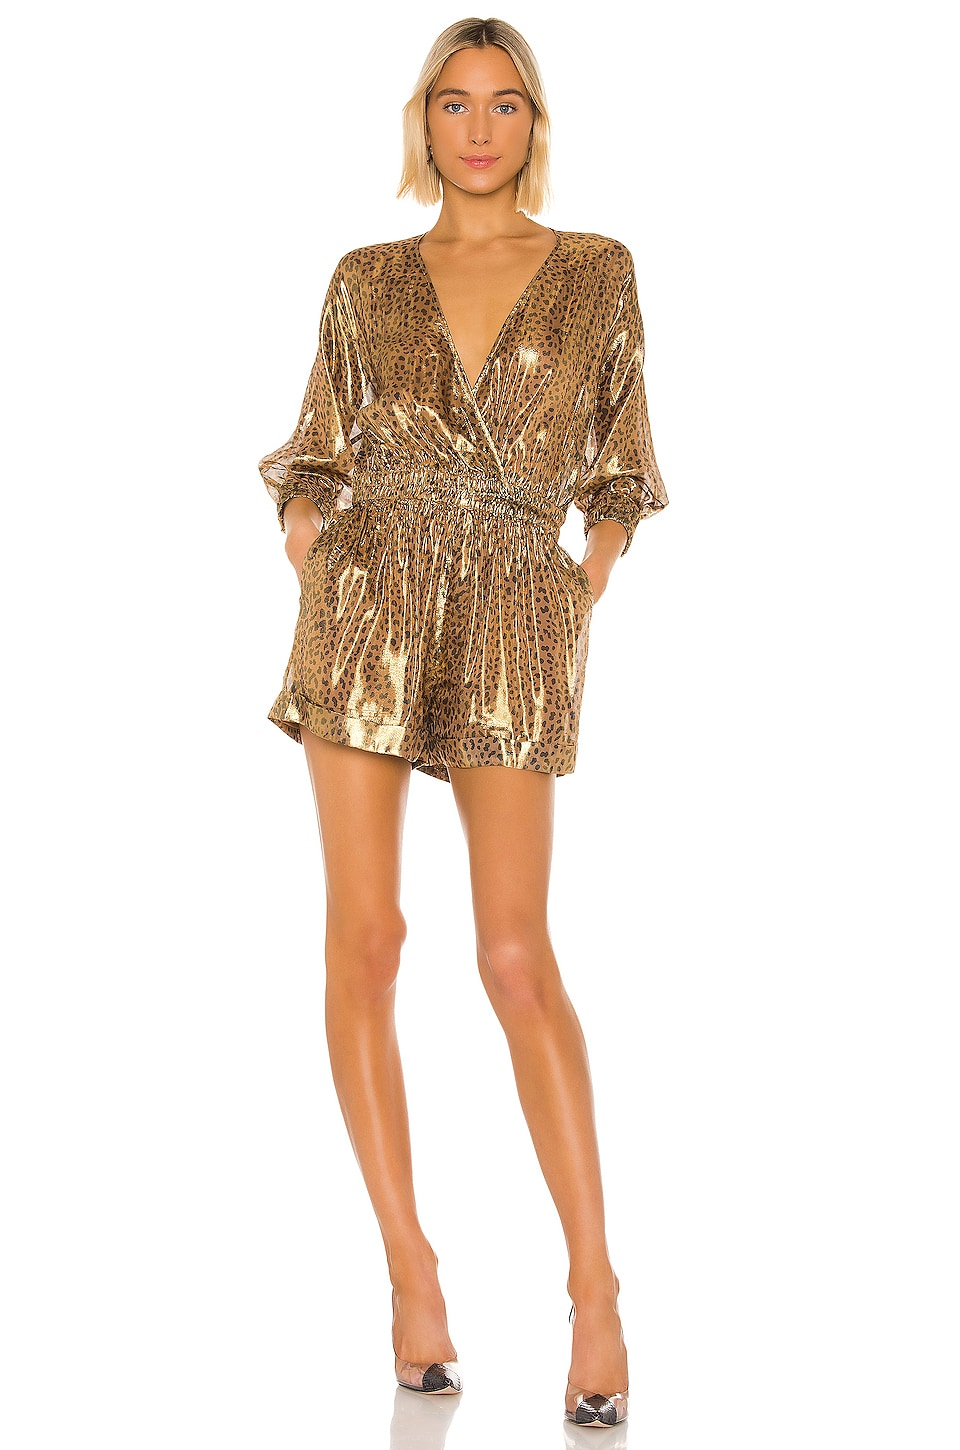 L'Academie The Katarin Romper in Metallic Leopard